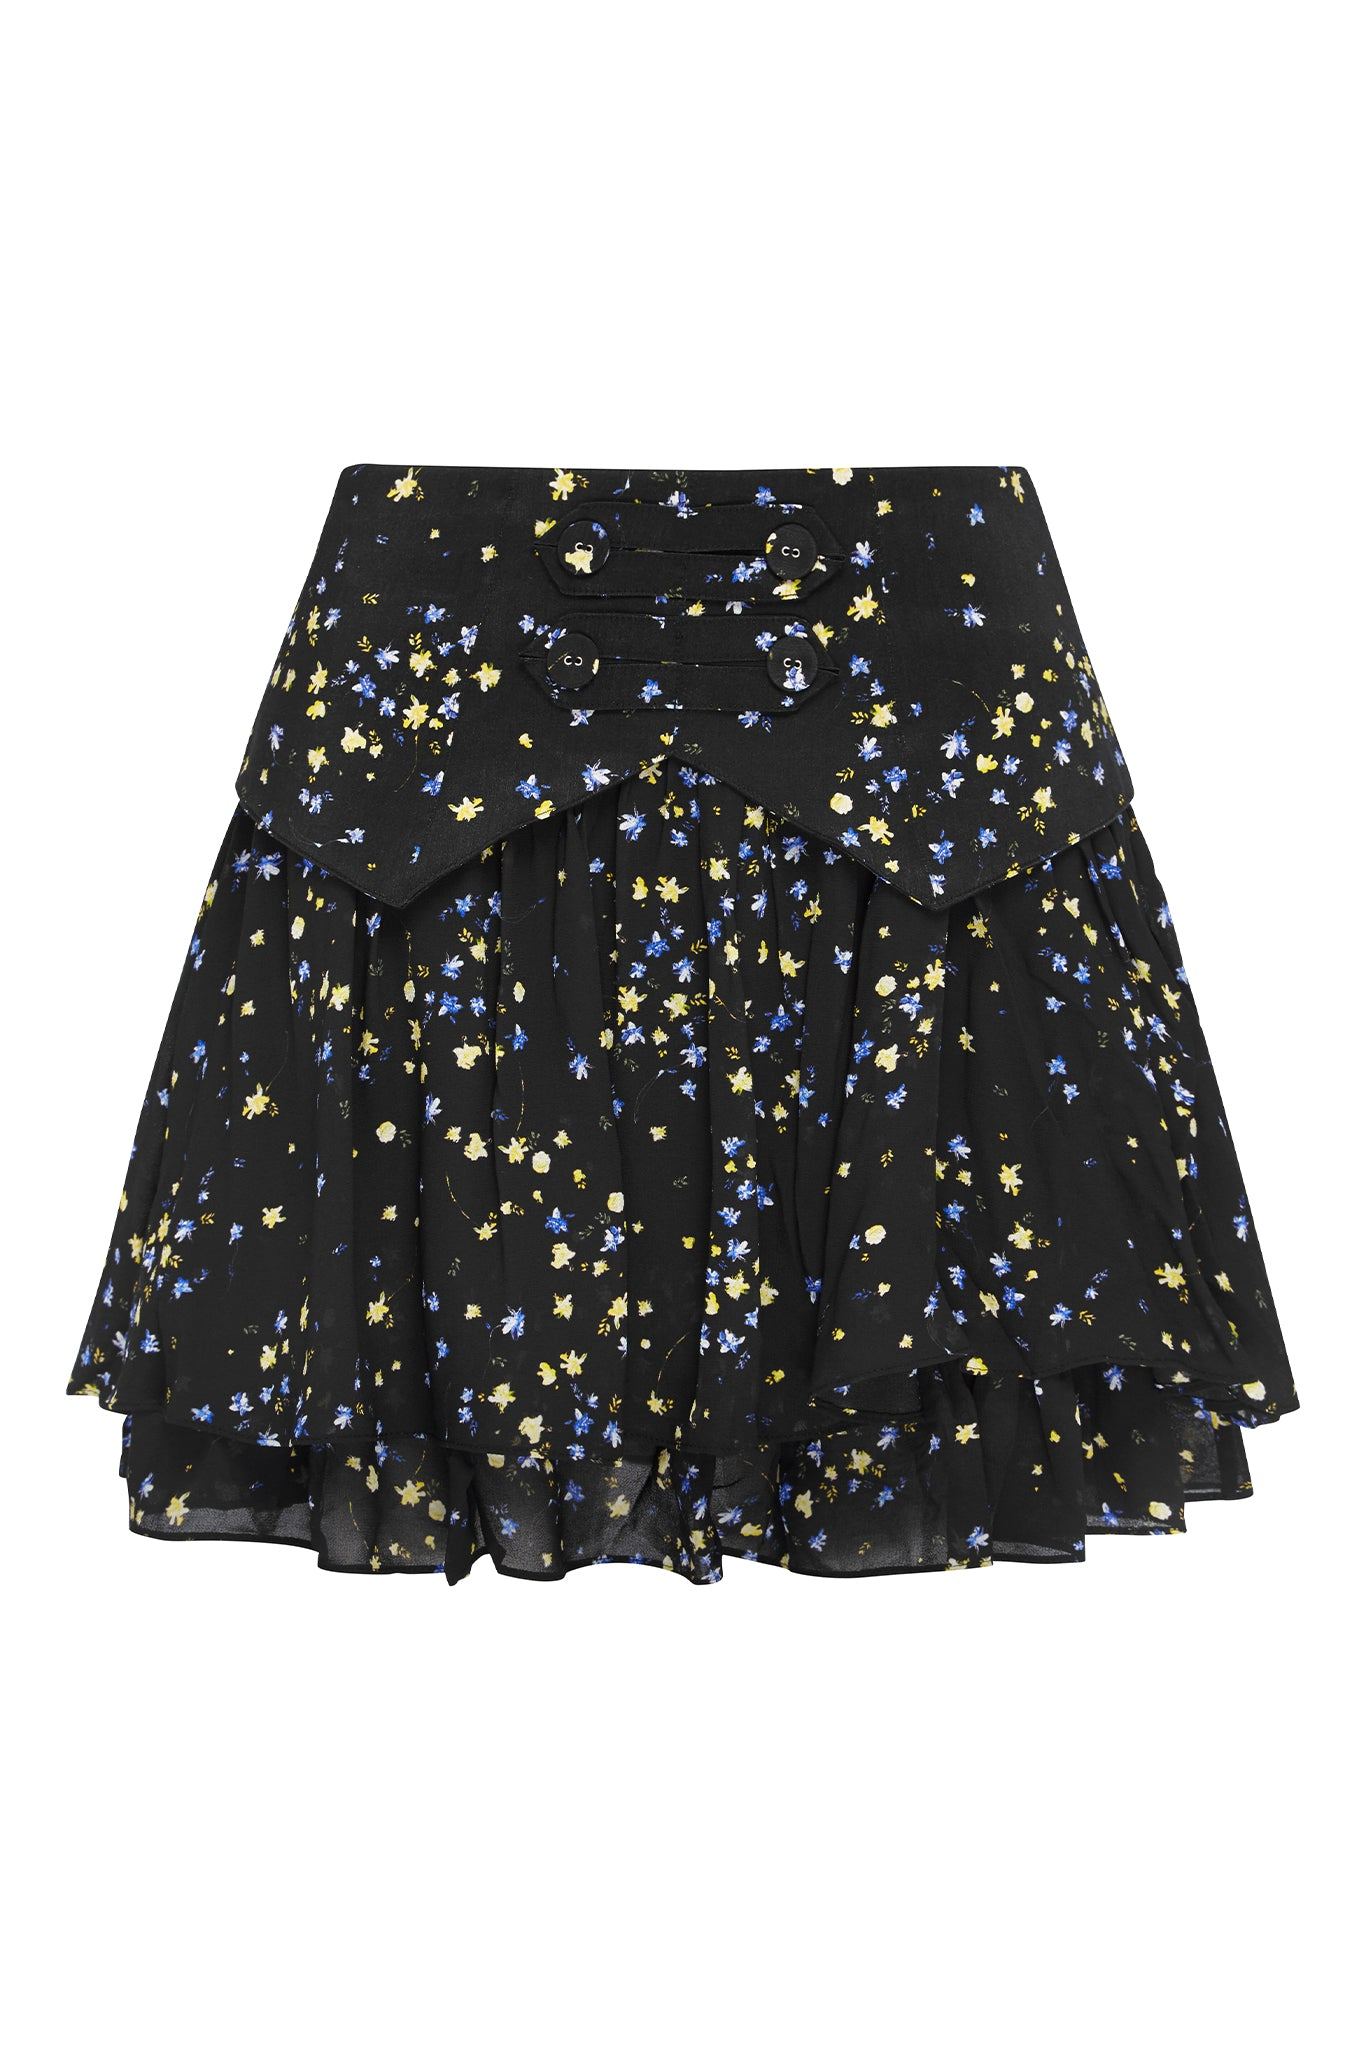 aea7582a32 Aje | Designer Women's Clothing | Discover our Skirt Collection